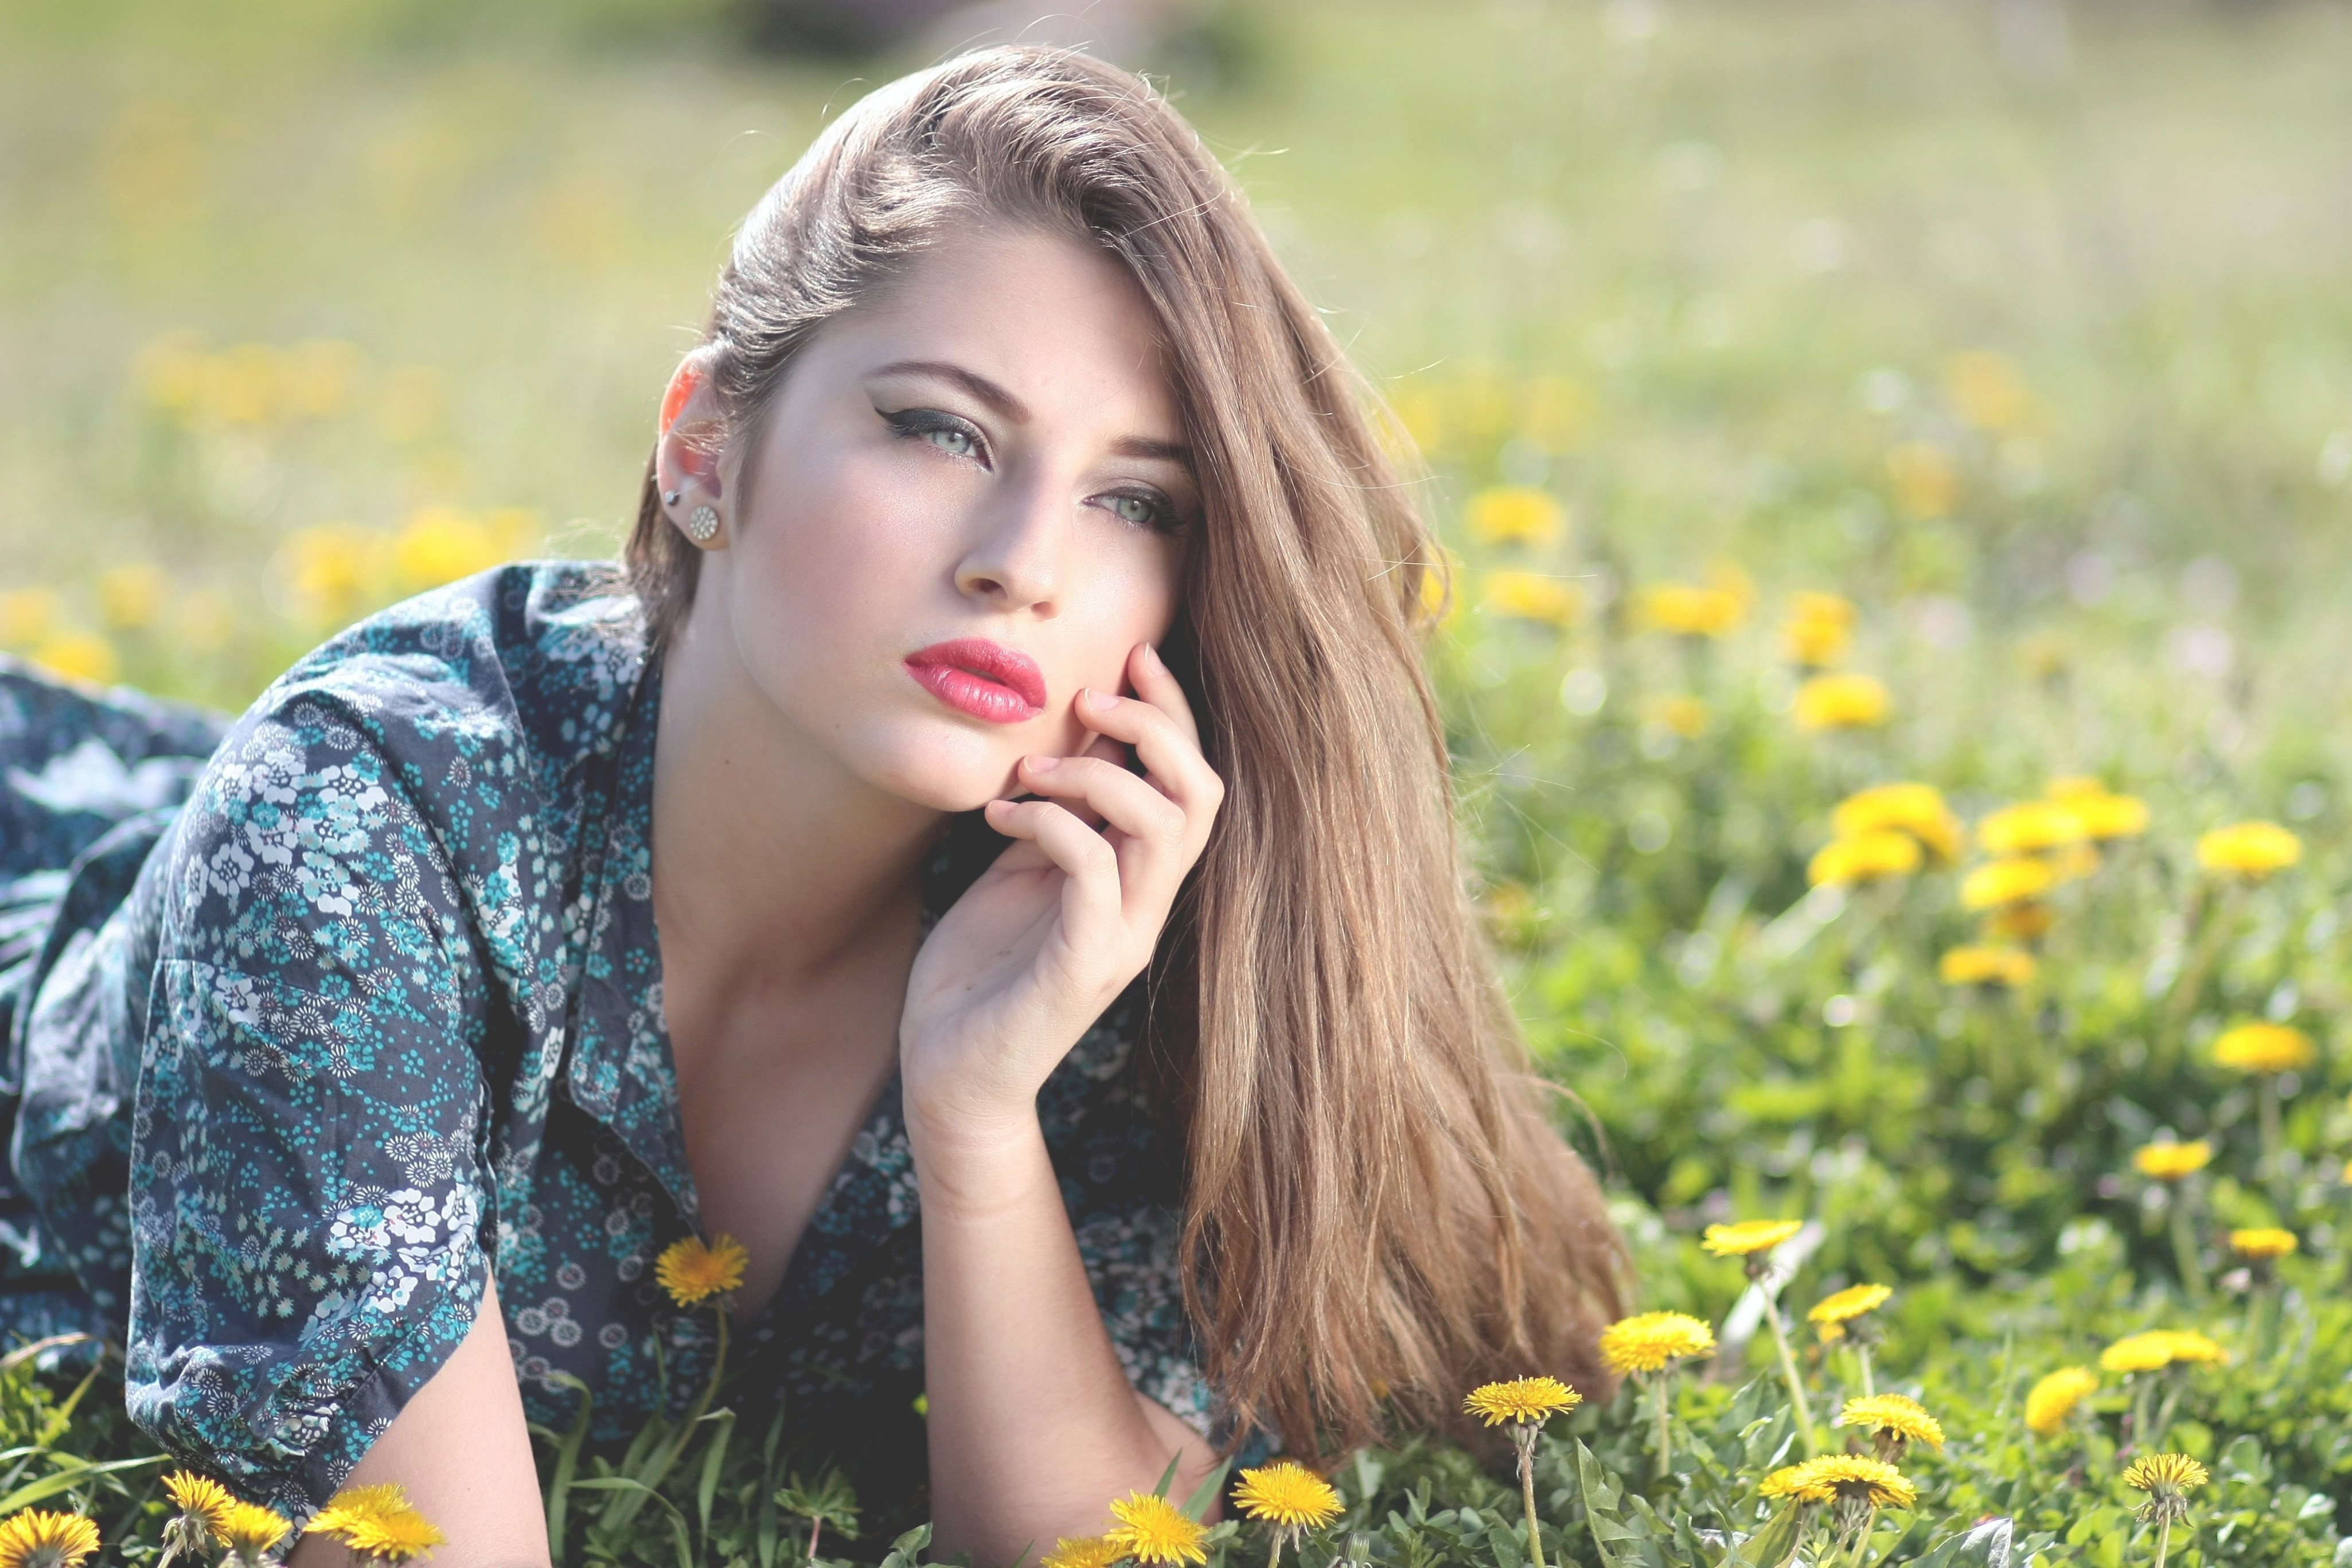 cute girl lying on yellow flower field during daytime